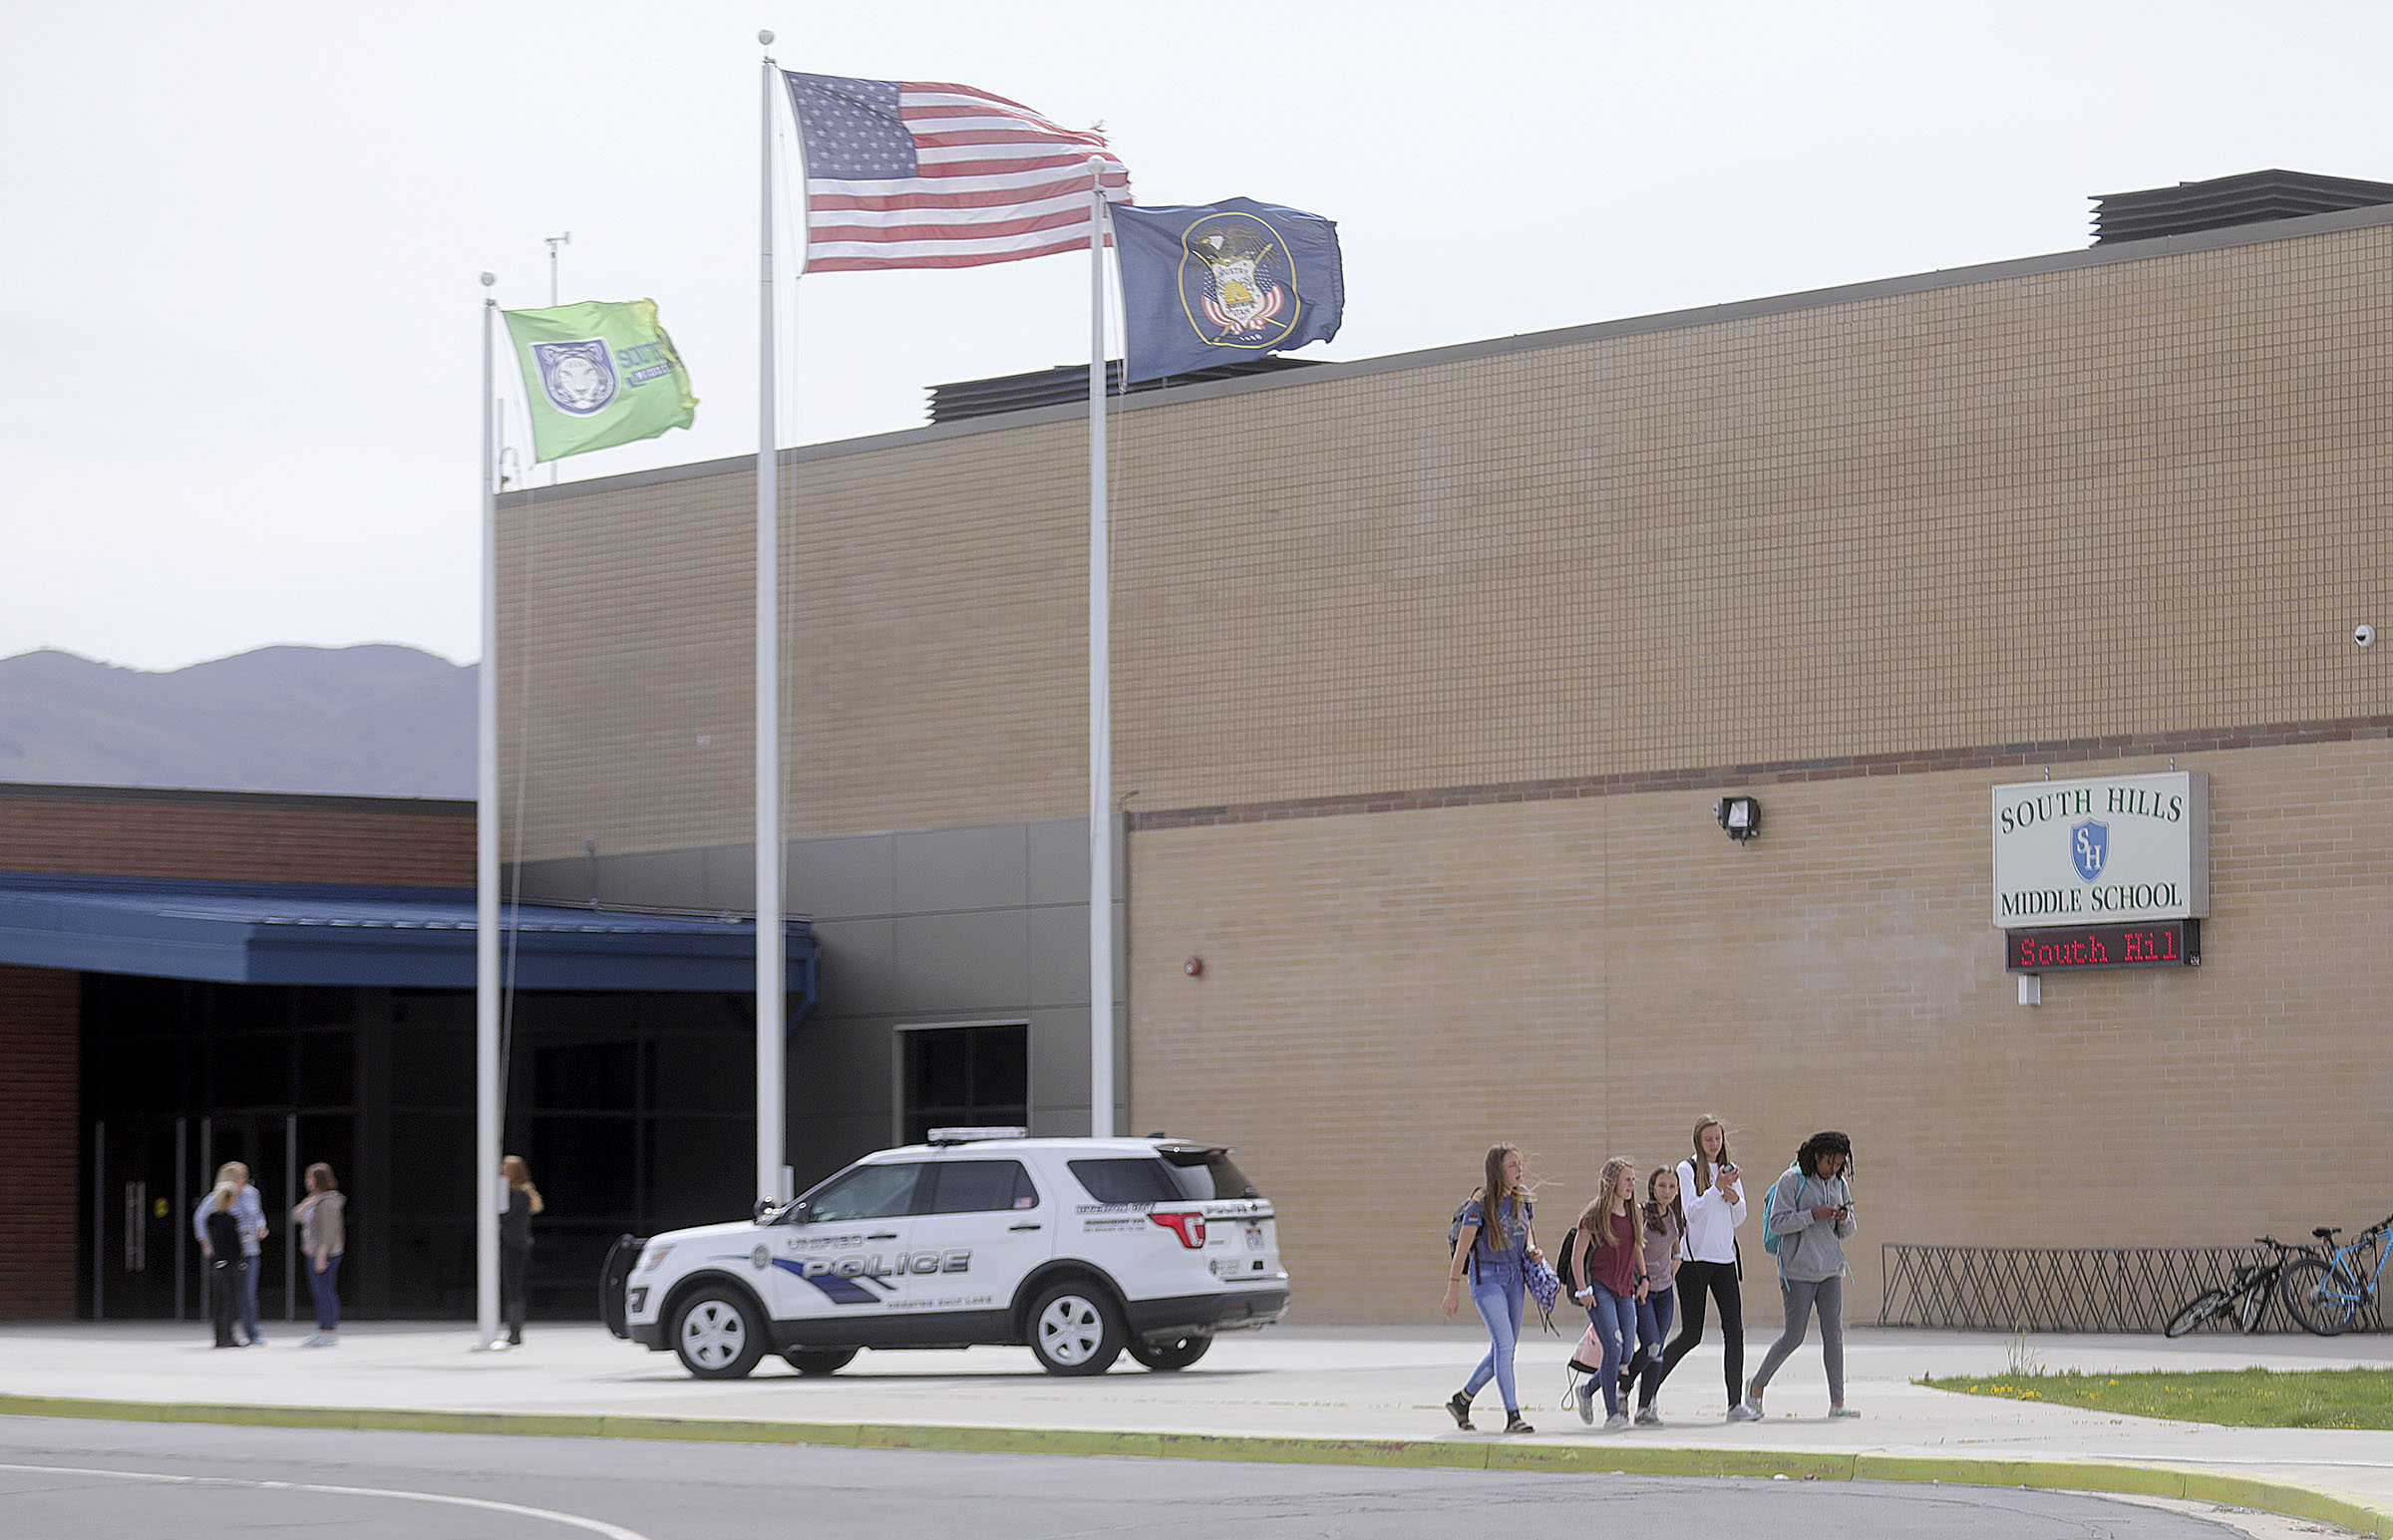 Students leave South Hills Middle School at the end of the day, after a man attacked a school resource officer and injured him with a piece of wood in Riverton on Monday, April 29, 2019.